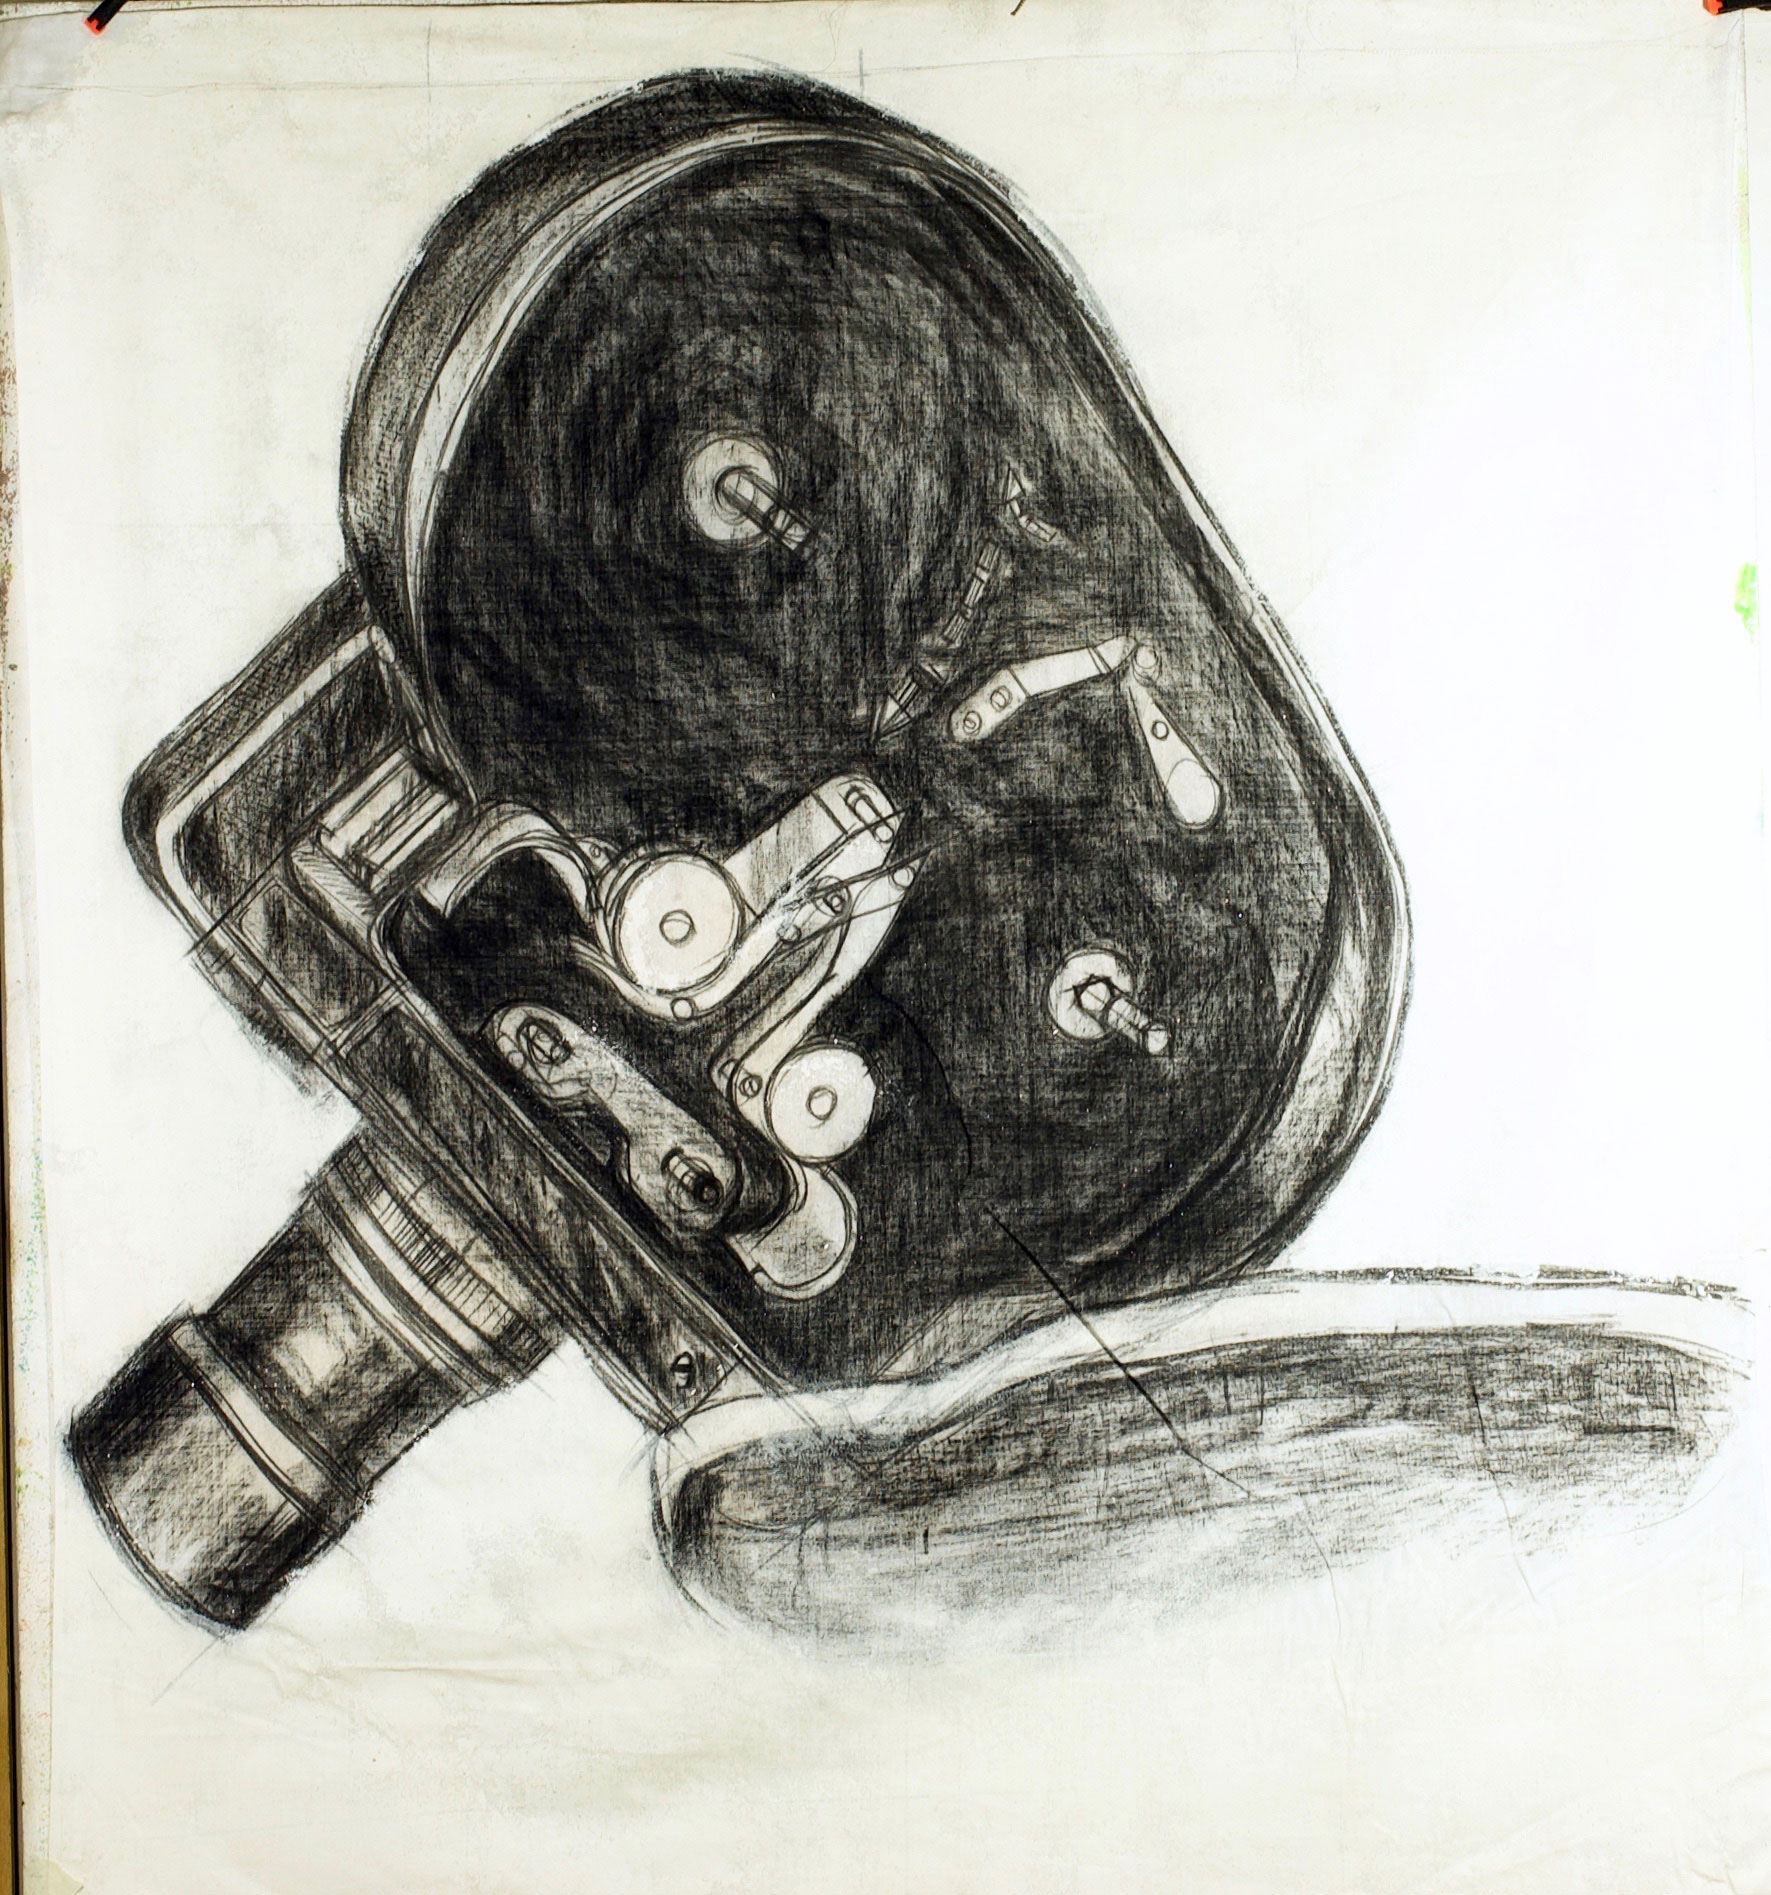 6-x-4'-charcoal-drawings-on-fabric-(8).jpg